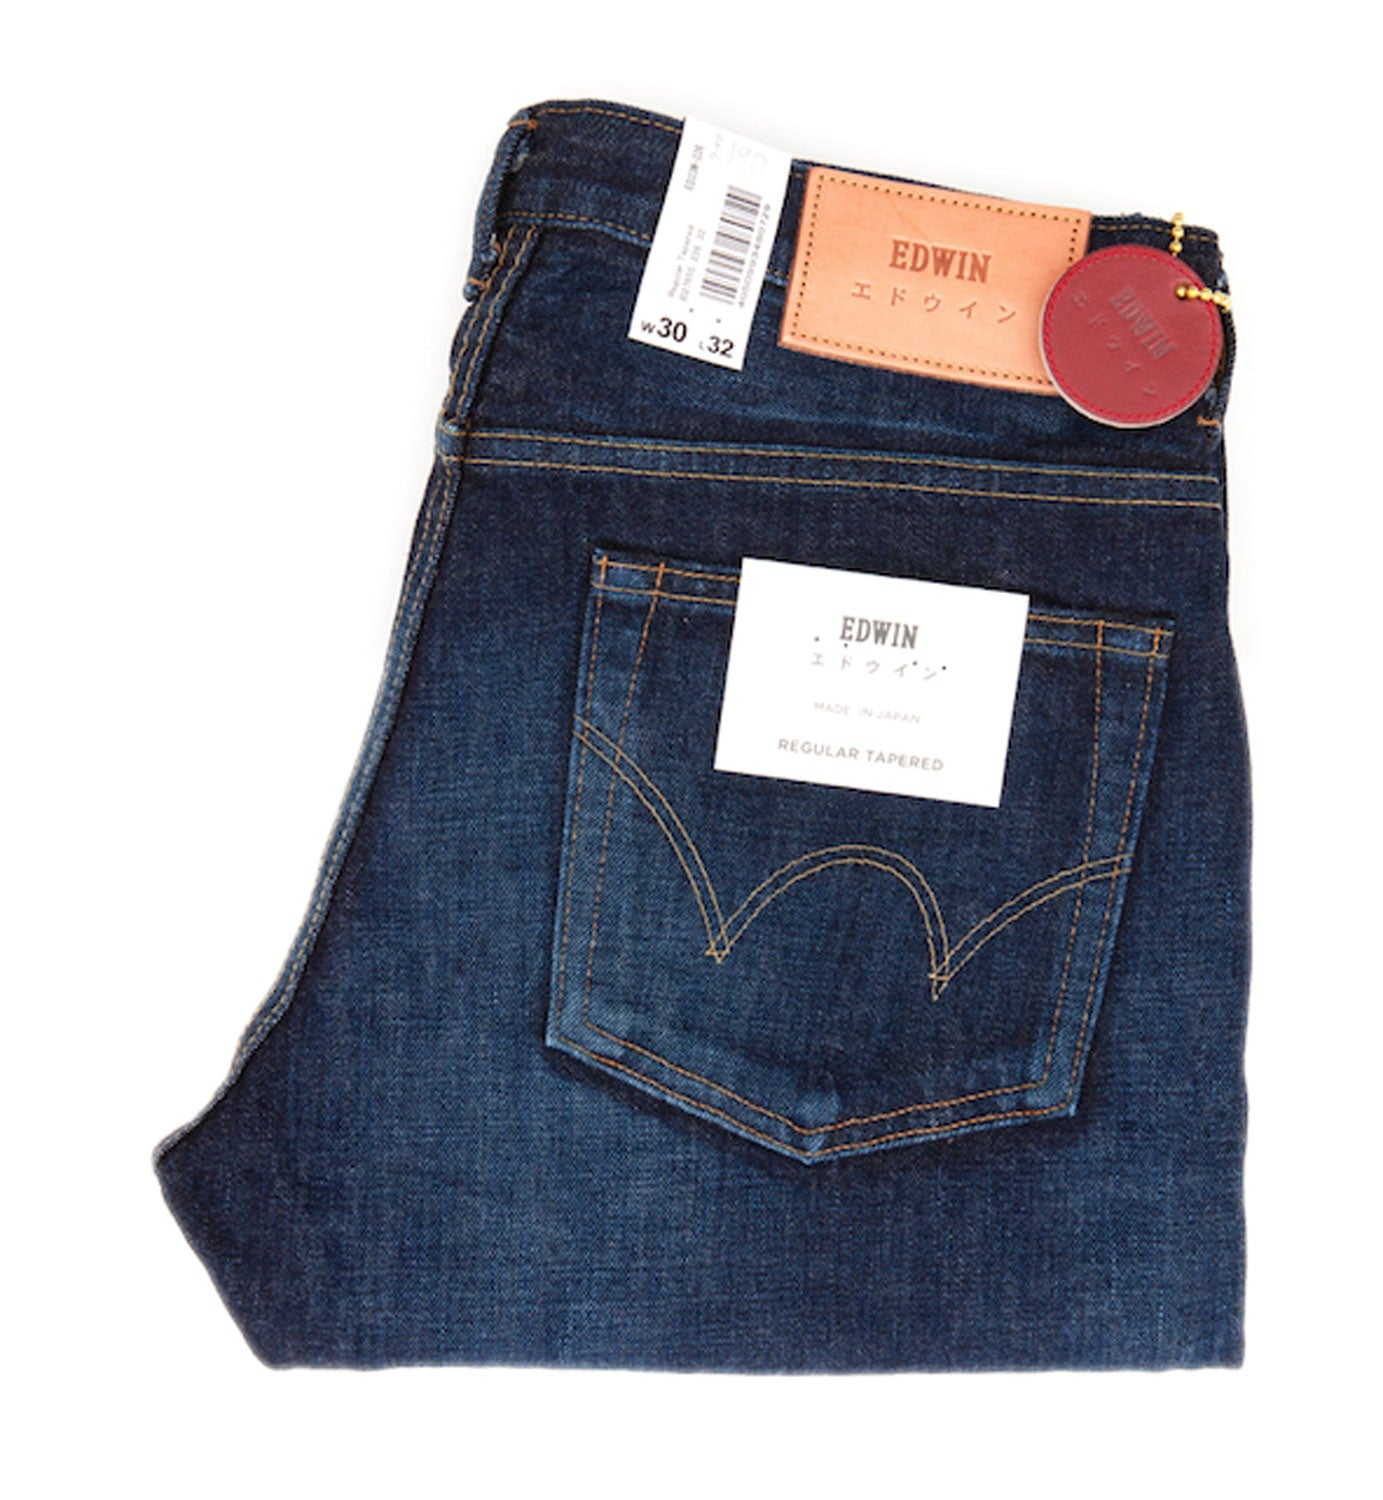 Edwin - ED33 -226 Jeans - Regular Tapered - Rainbow Selvage Denim - Regent Tailoring